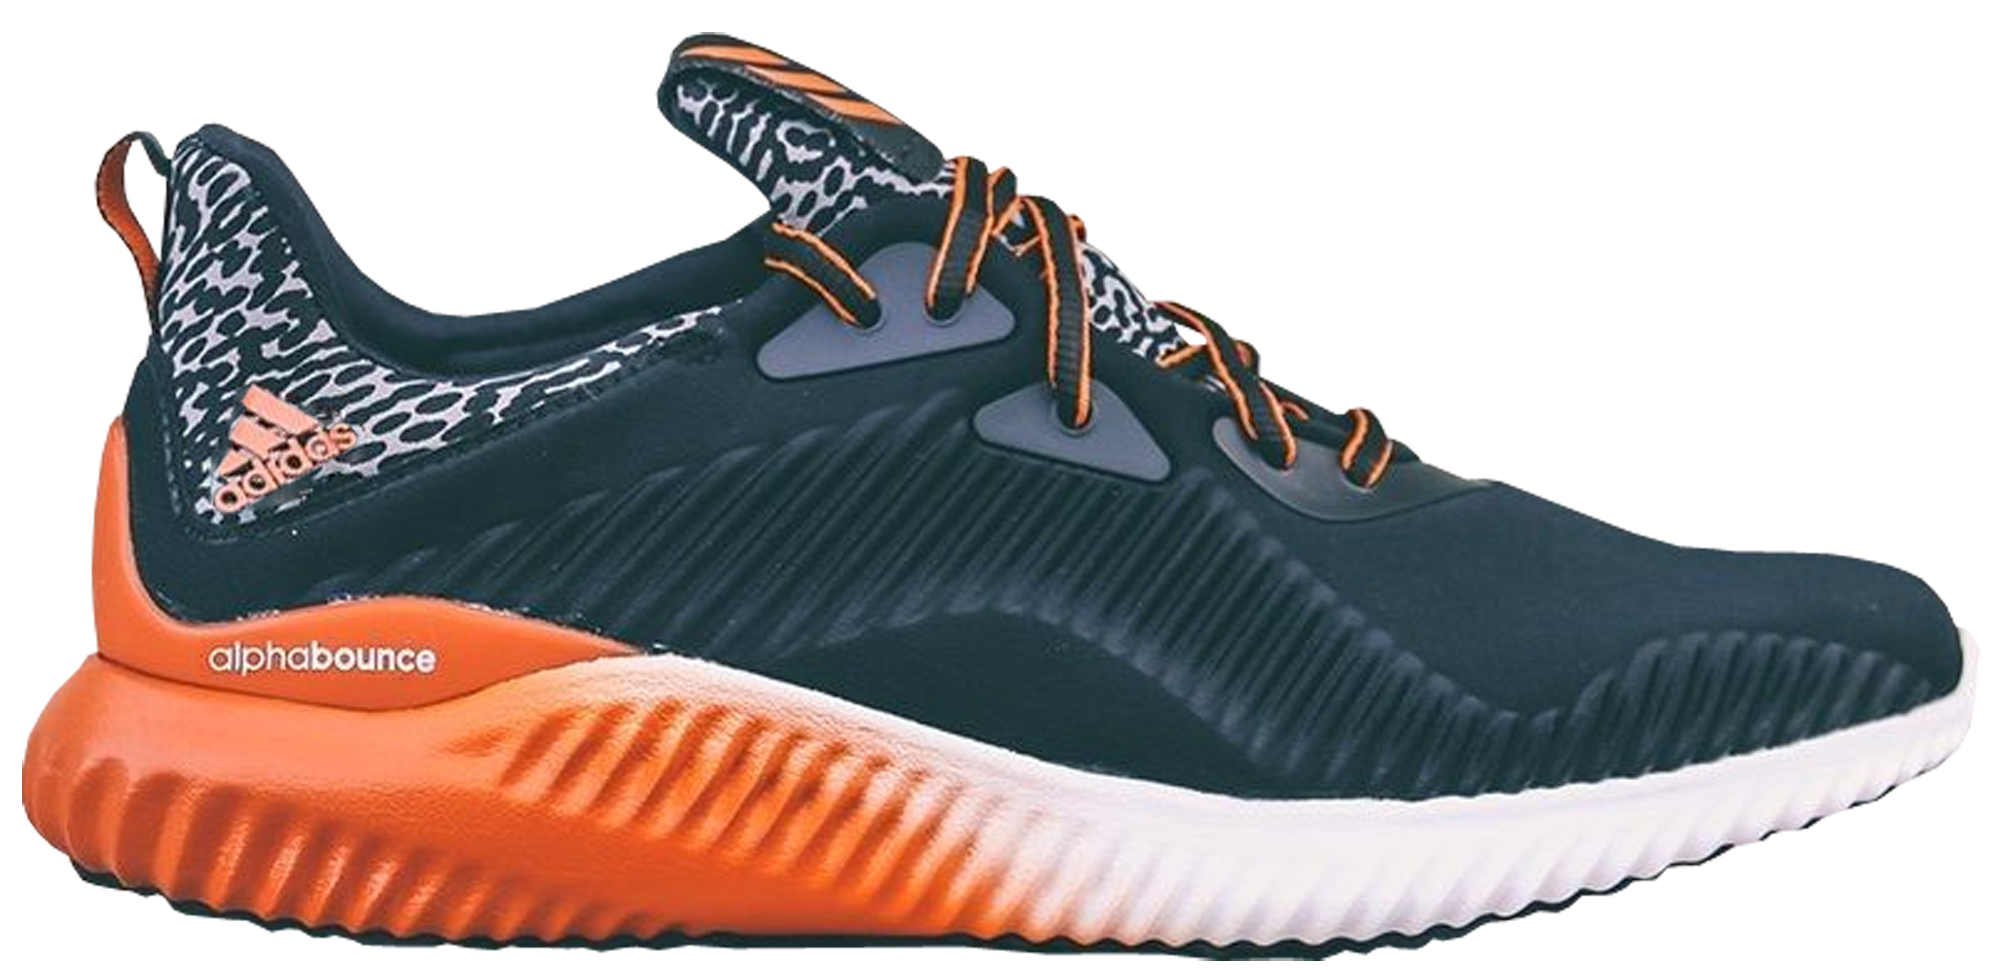 finest selection 6b6c6 22ab2 Adidas AlphaBounce Miami Hurricanes PE - StockX News